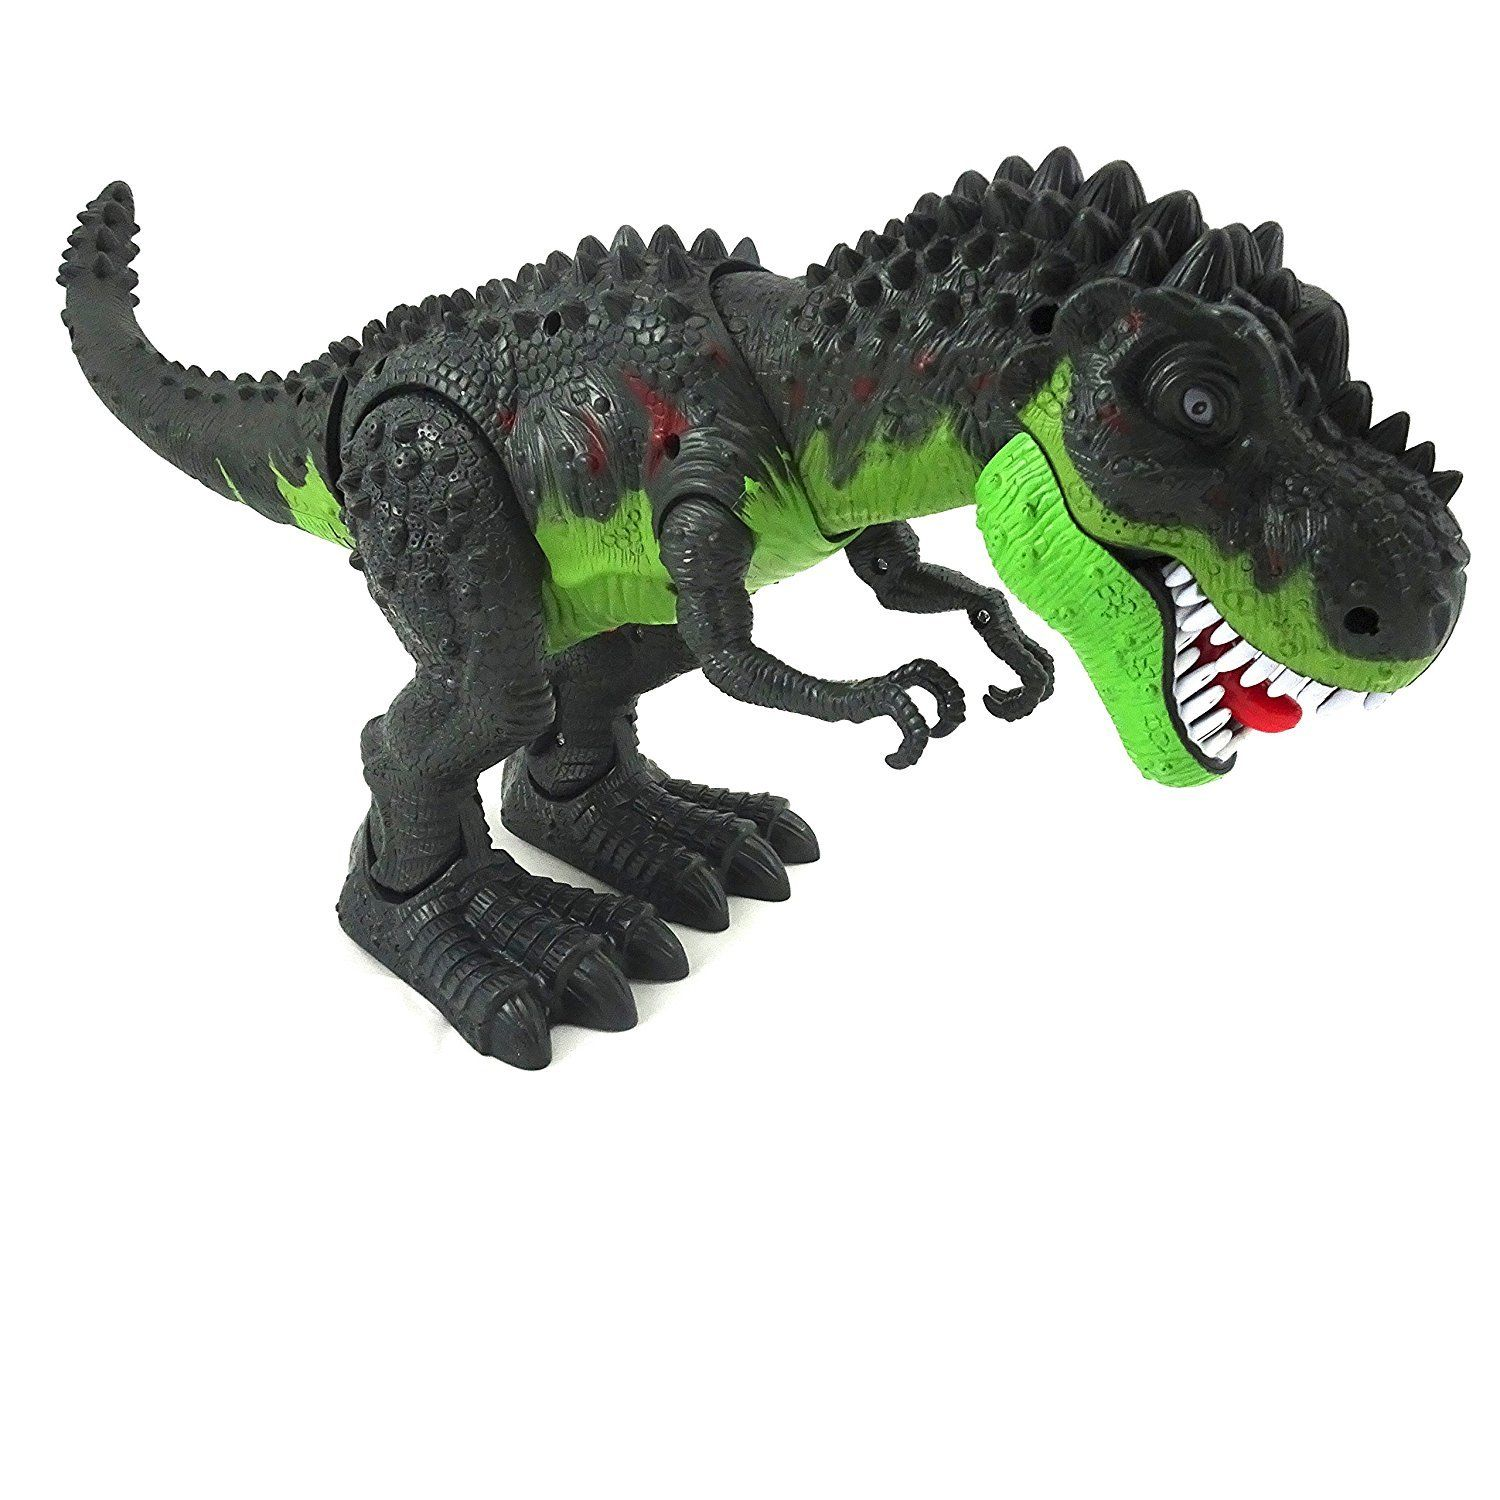 B O Dinosaur Toy From Jurassic Period Tyrannosaurus Rex T-Rex Walking & Lights(Color May Vary) by